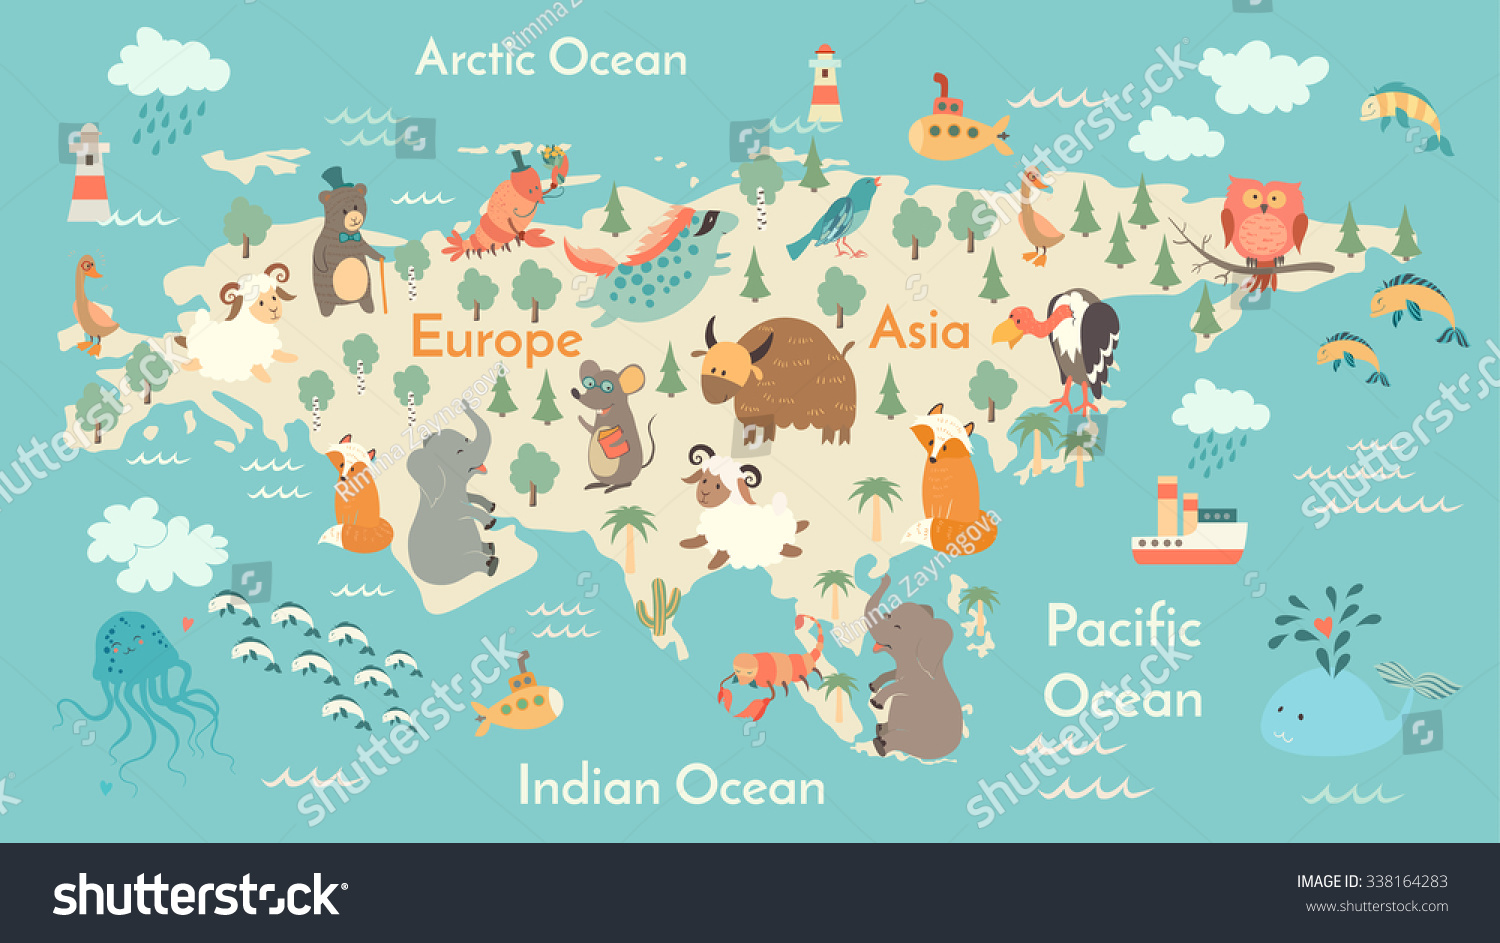 Kids Map Of Continents on map making, map of hemispheres, map of earth, map of the seas, map of equator, map of cities, blank map continents, map of states, map of africa, map of the world, map of india, map of pangea, map of oceans, map of europe, map of canada, map of prime meridian, map of middle east, map of columbus voyage, map of china, map of landforms,